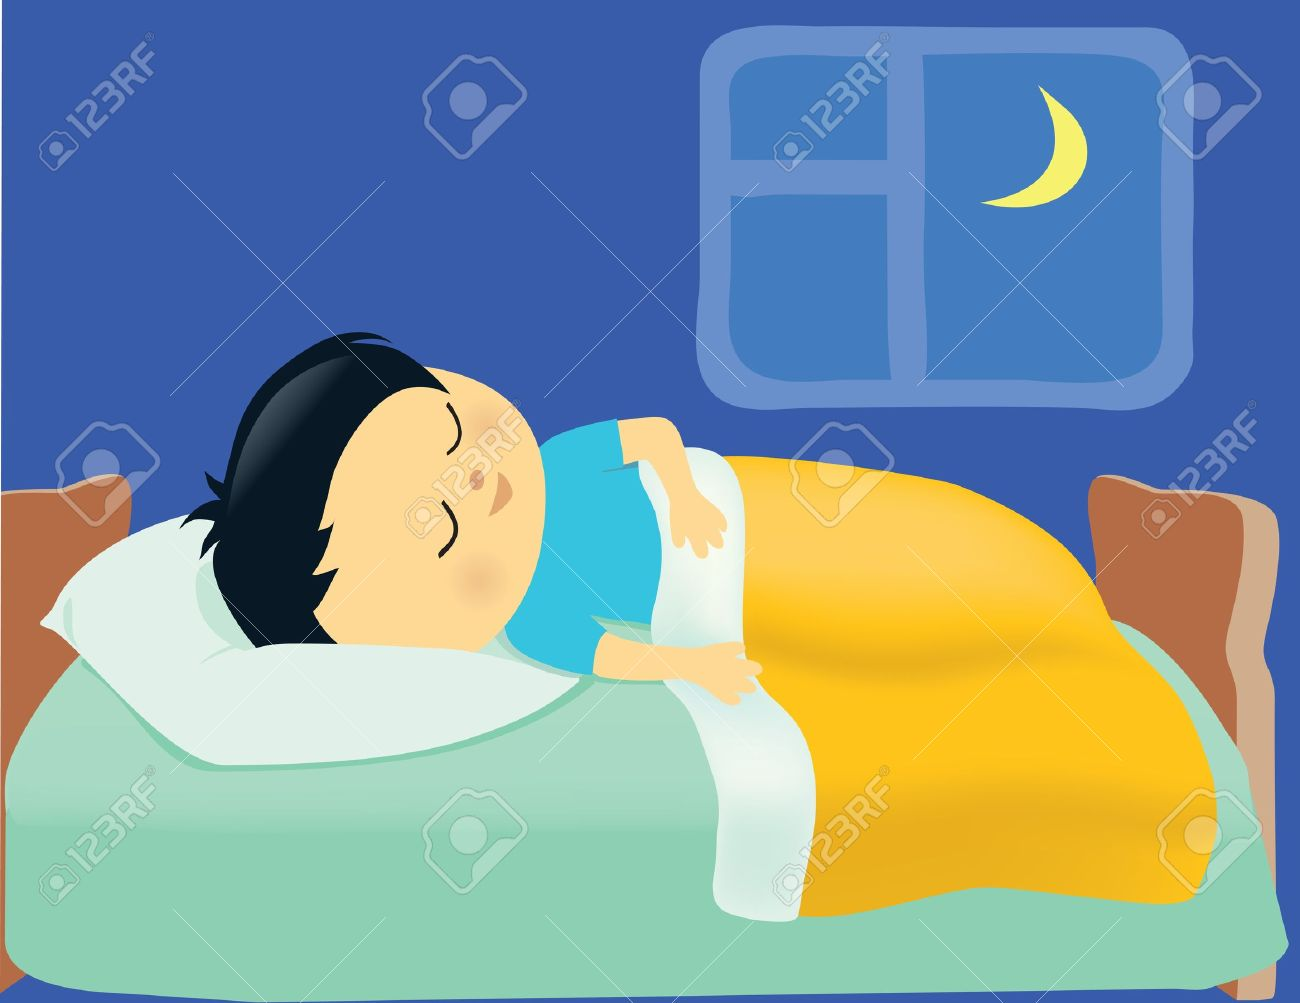 Clipart Boy Sleeping In Bed.